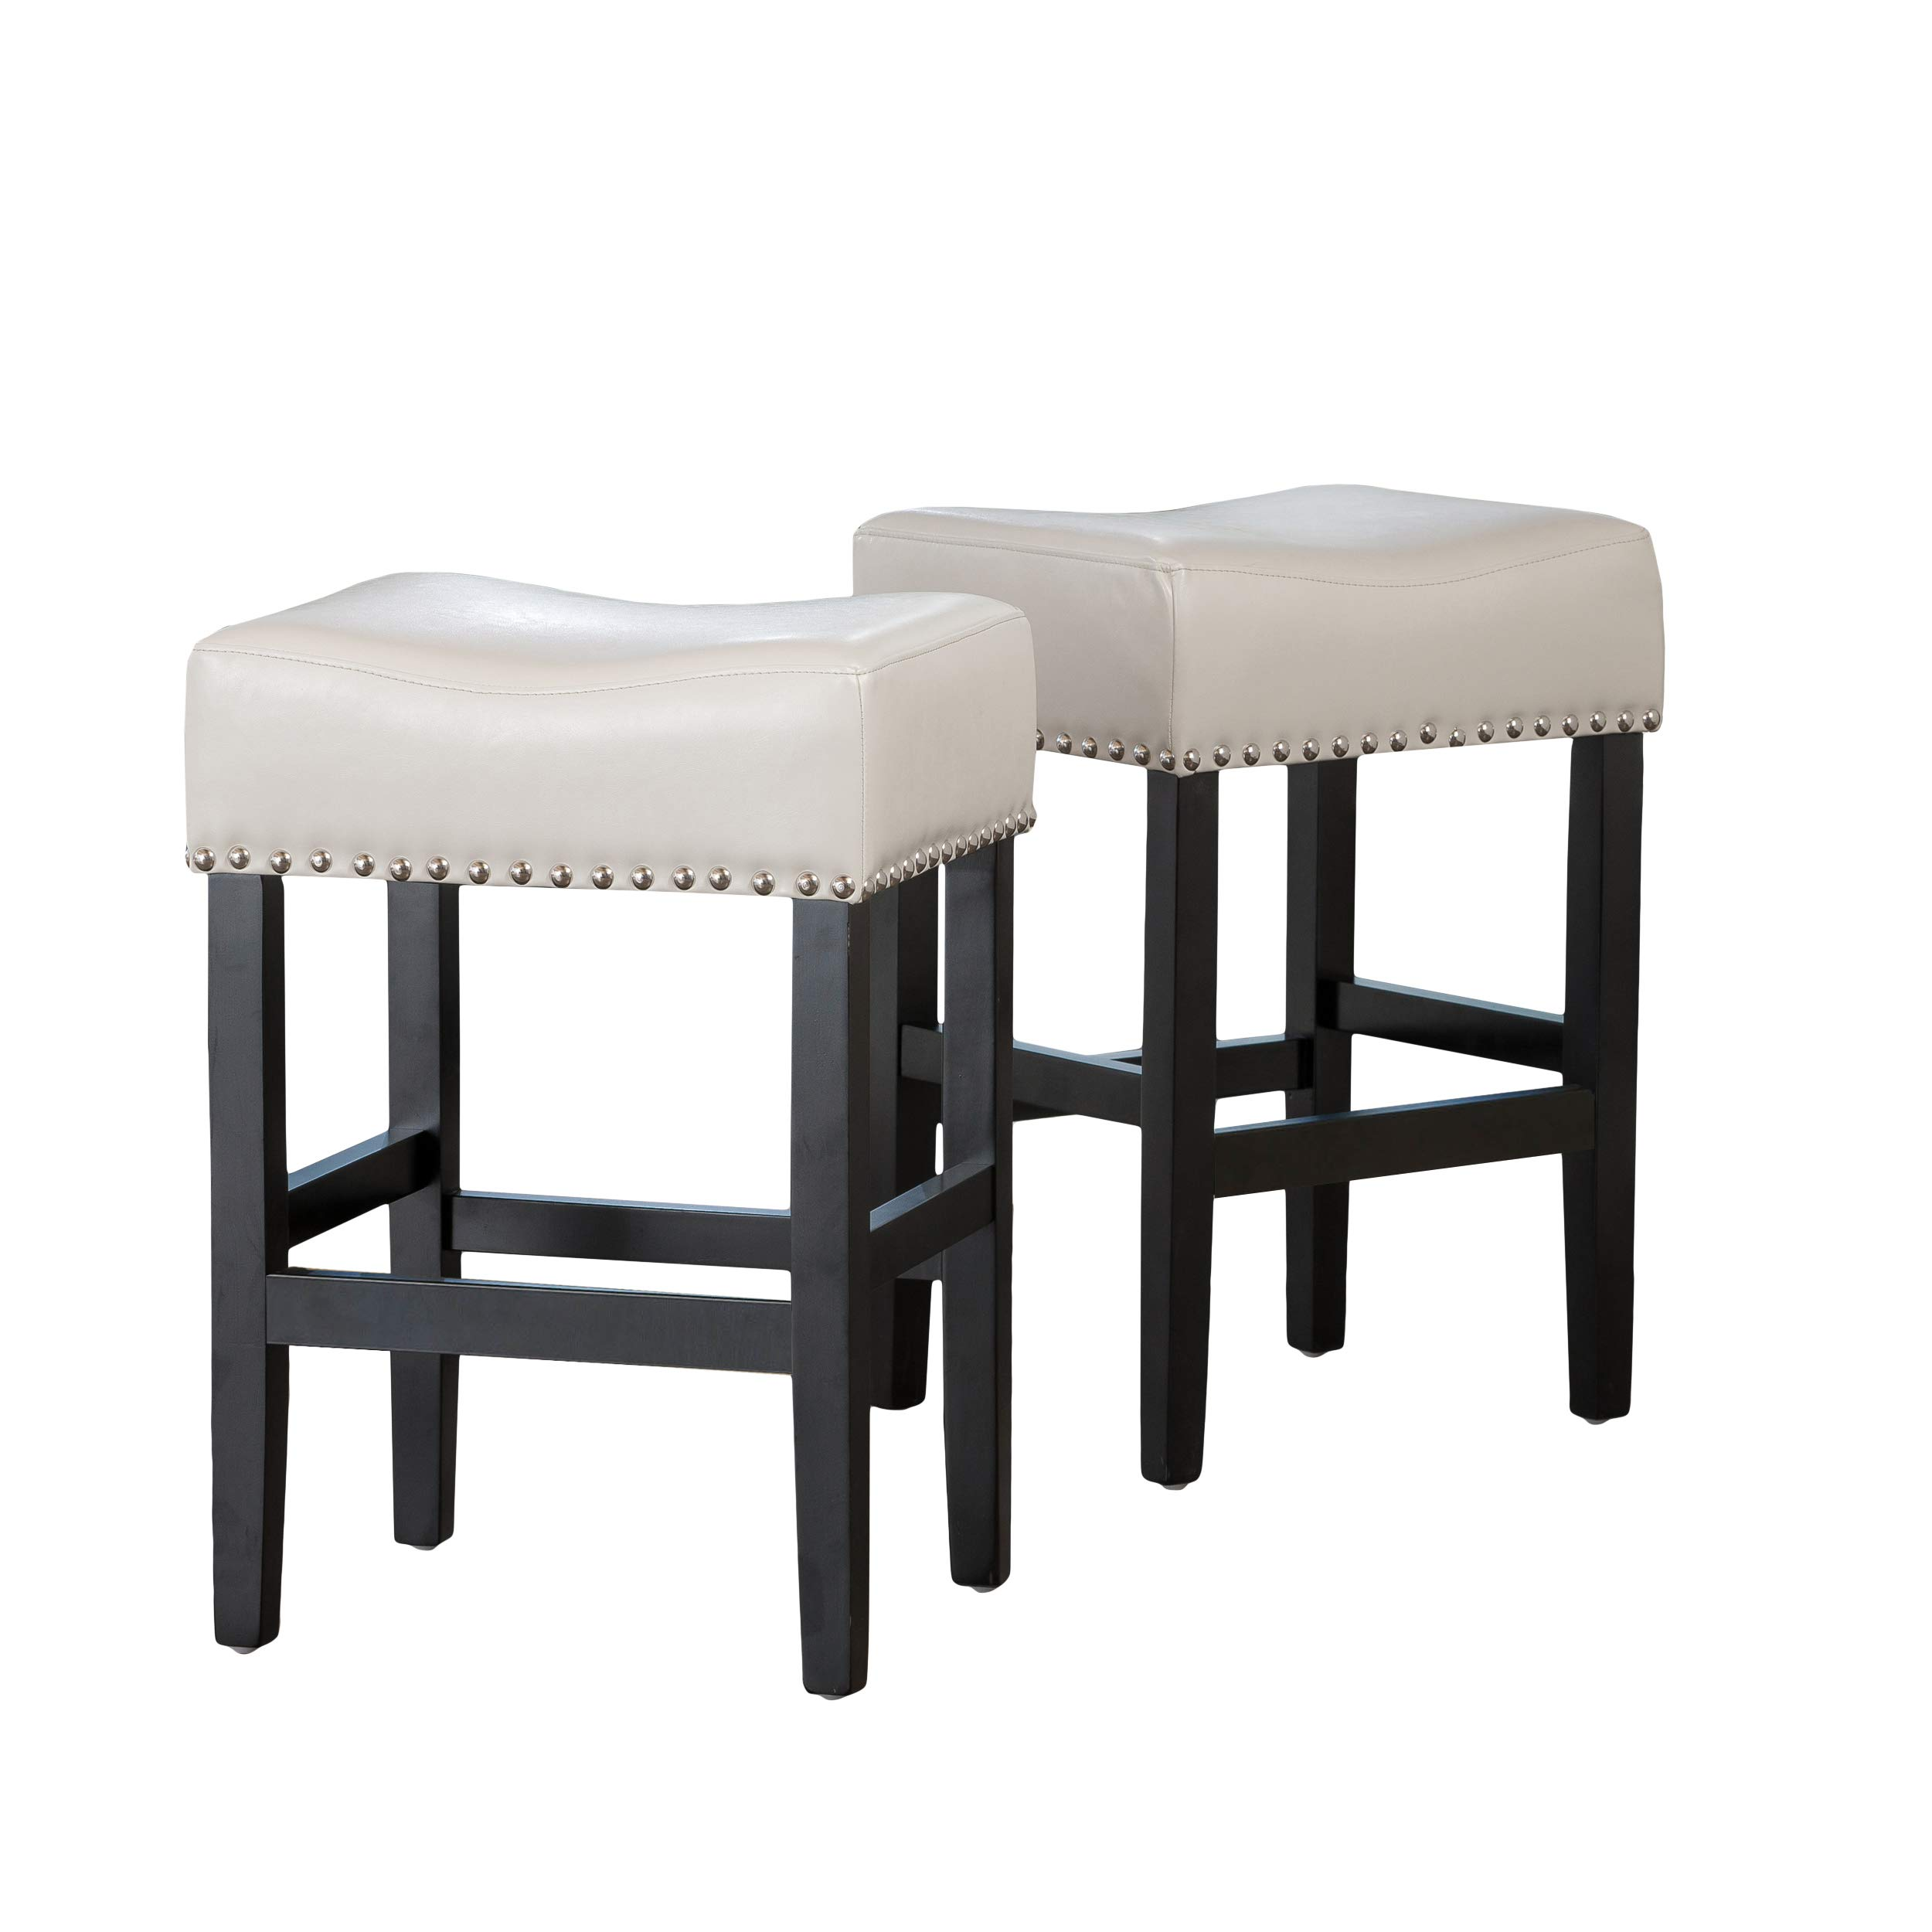 Christopher Knight Home Chantal Backless Ivory Leather Counter Stools wChrome Nailheads, 18.00''W x 15.50'' D x 26.00'' H by Christopher Knight Home